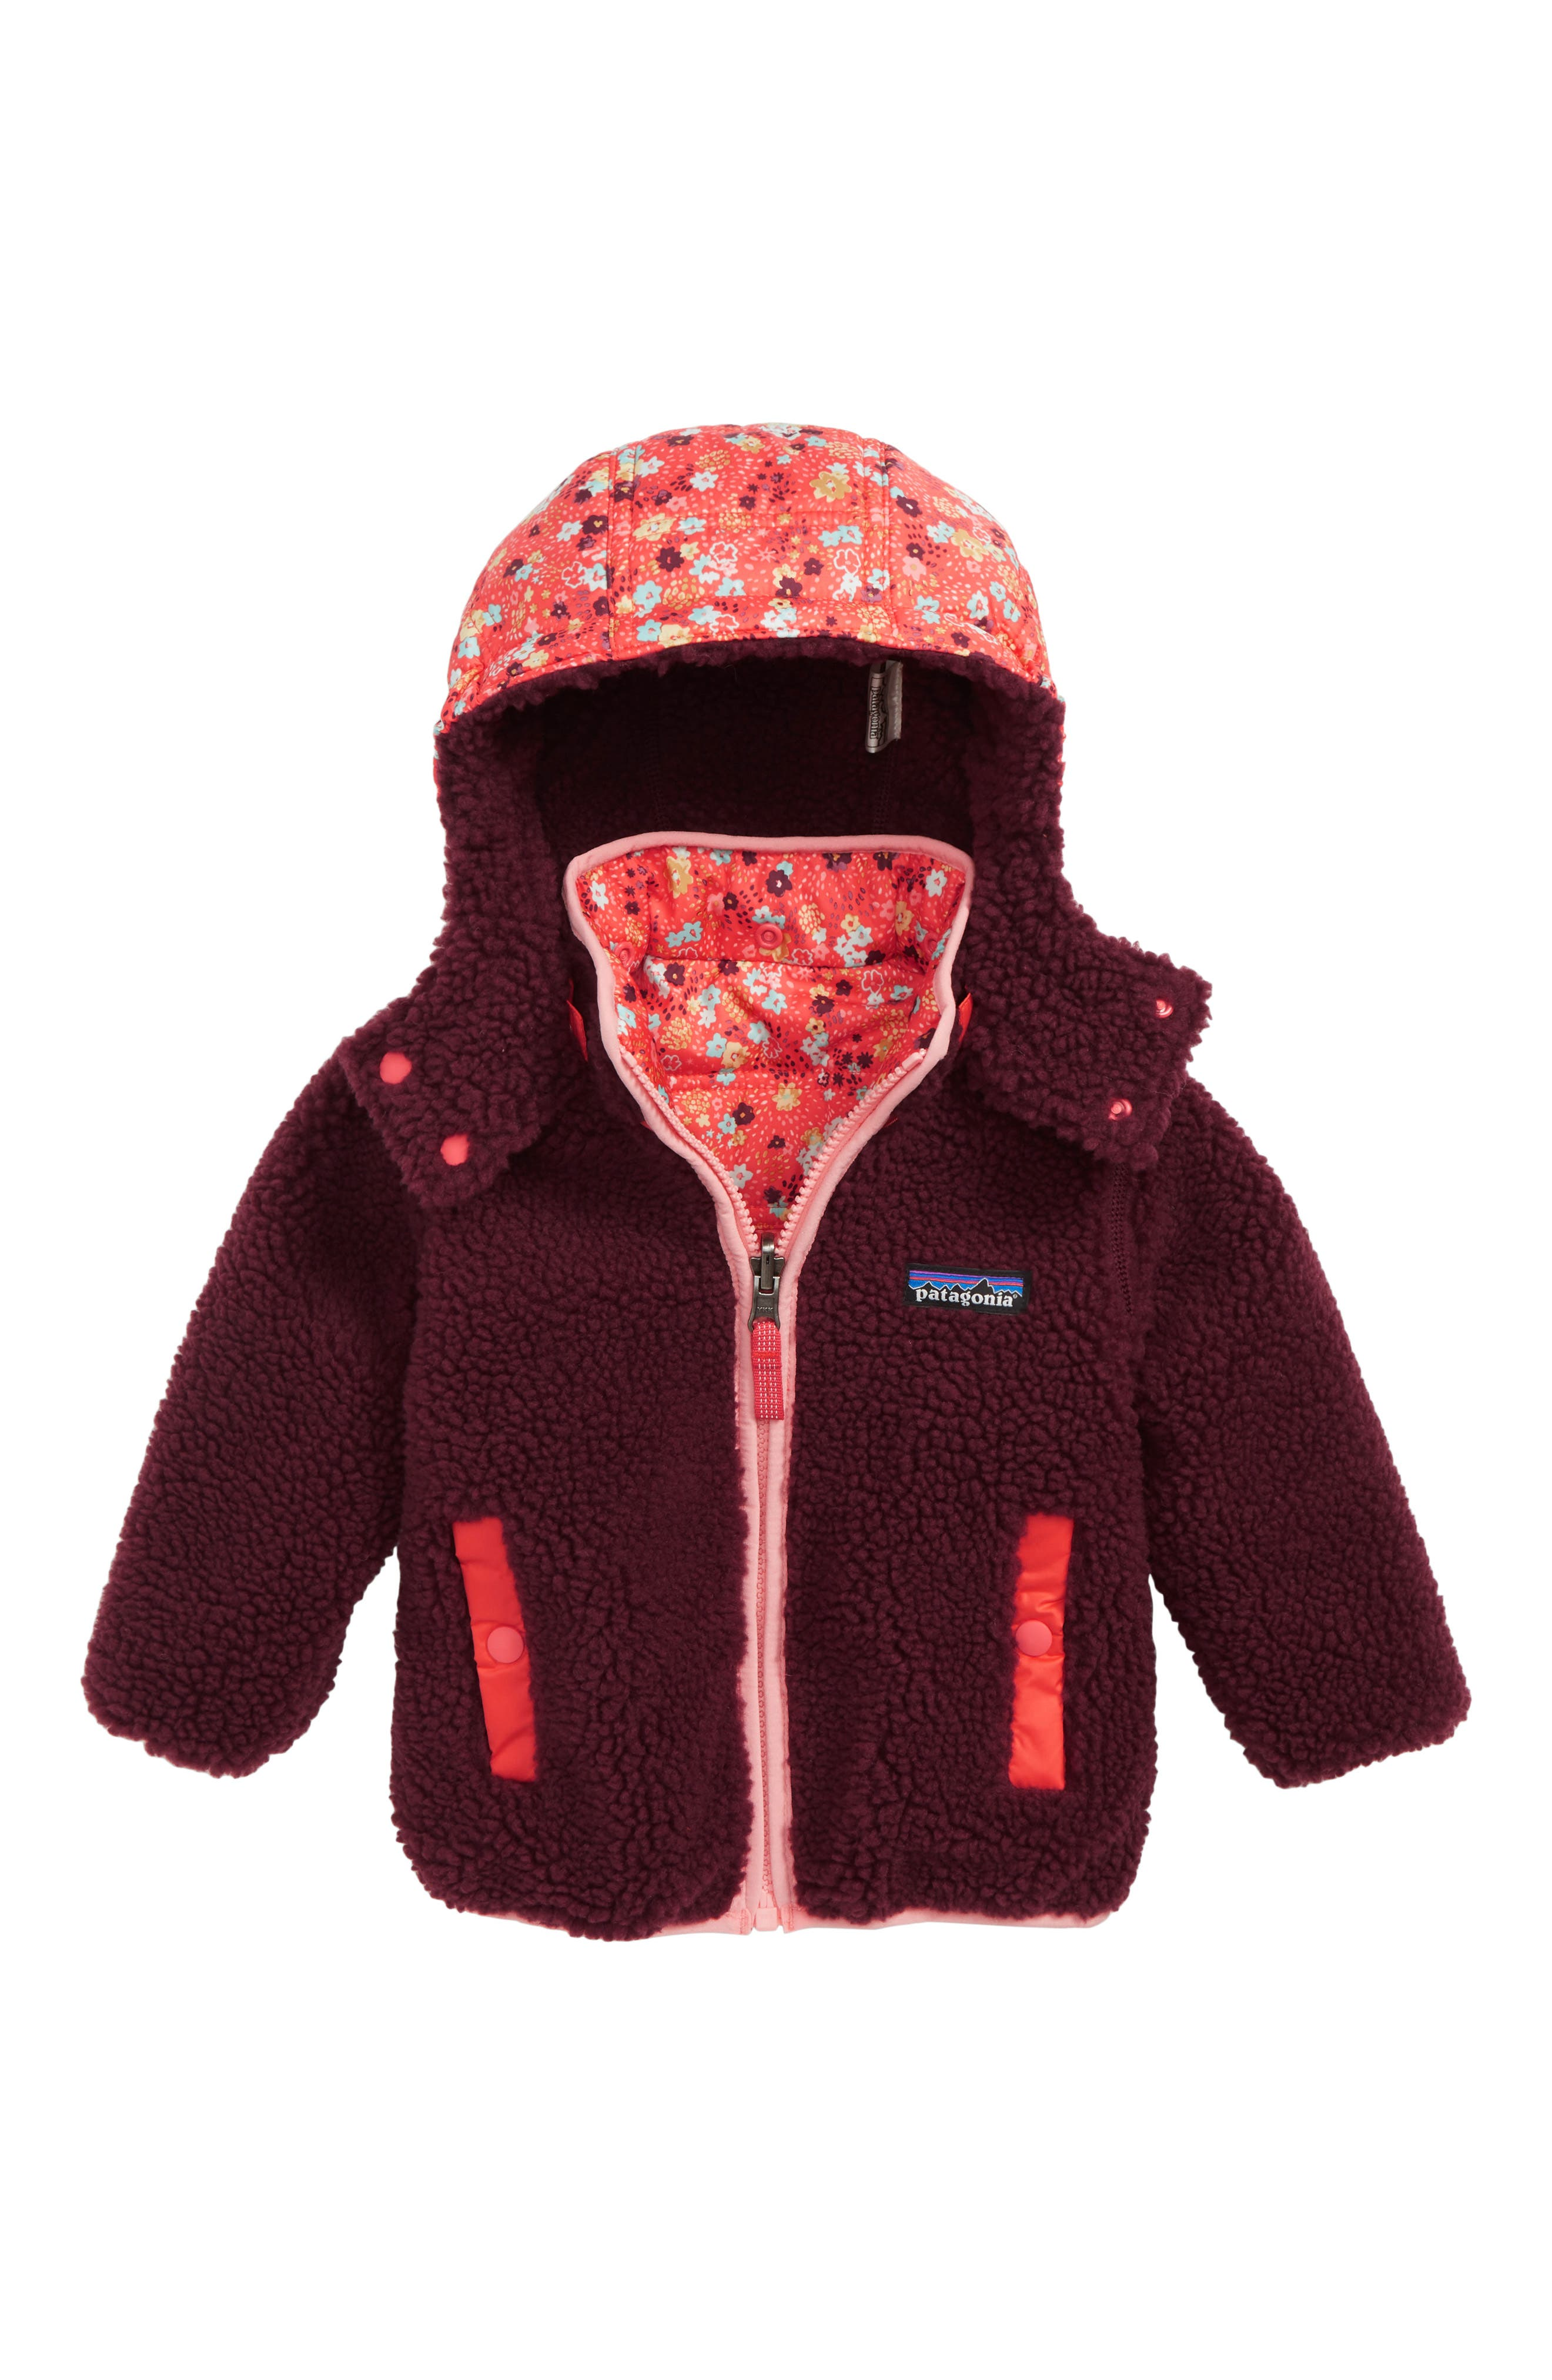 PATAGONIA, Tribbles Reversible Water Resistant Snow Jacket, Alternate thumbnail 2, color, UDSC UNTAMED DITSY SPICE CORAL